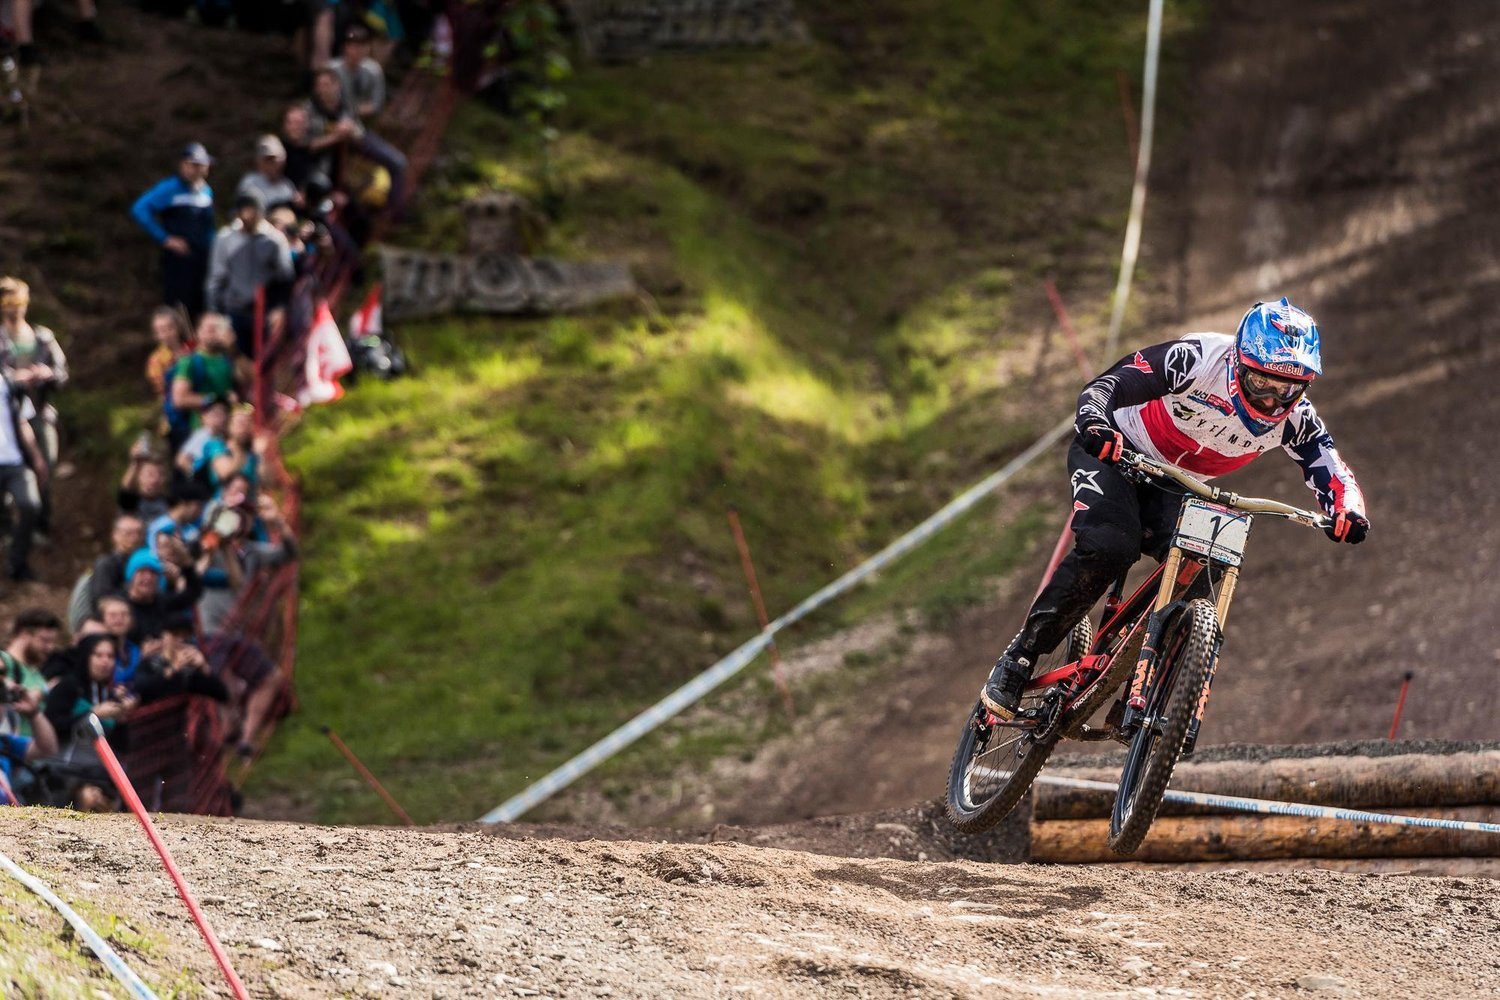 Aaron Gwin YT Industries YT Mob UCI Downhill World Cup Leogang Austria Red Bull Bike